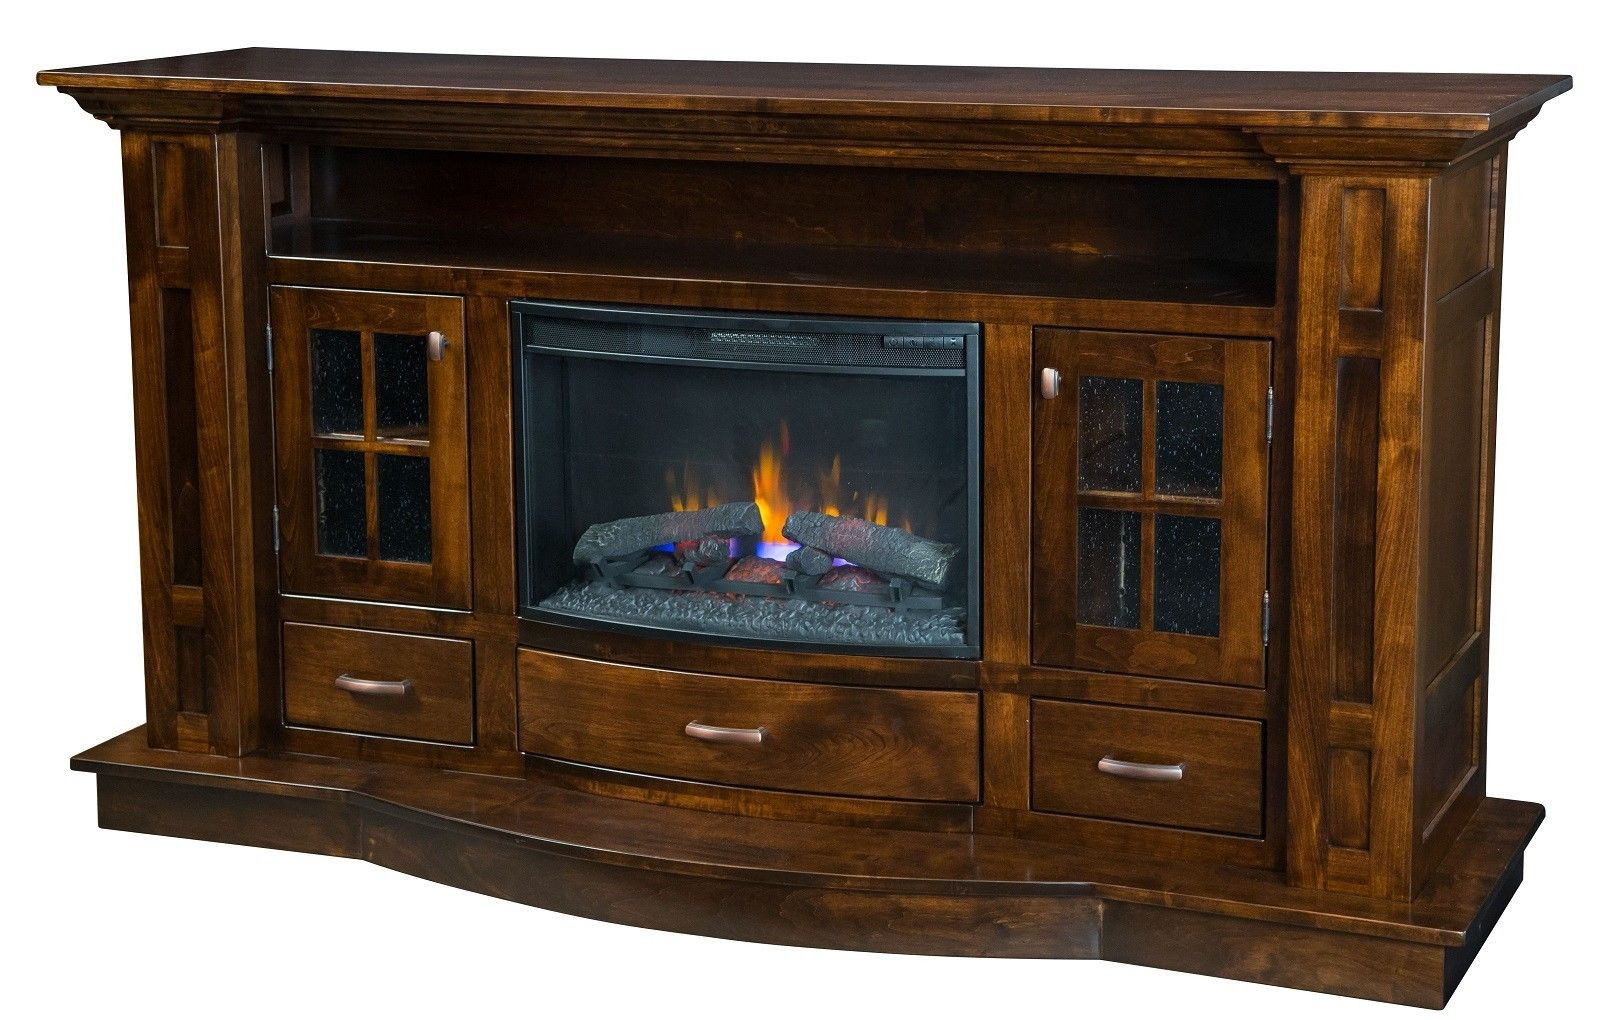 Best ideas about Home Depot Fireplace Tv Stand . Save or Pin Fireplace TV Stand Now.